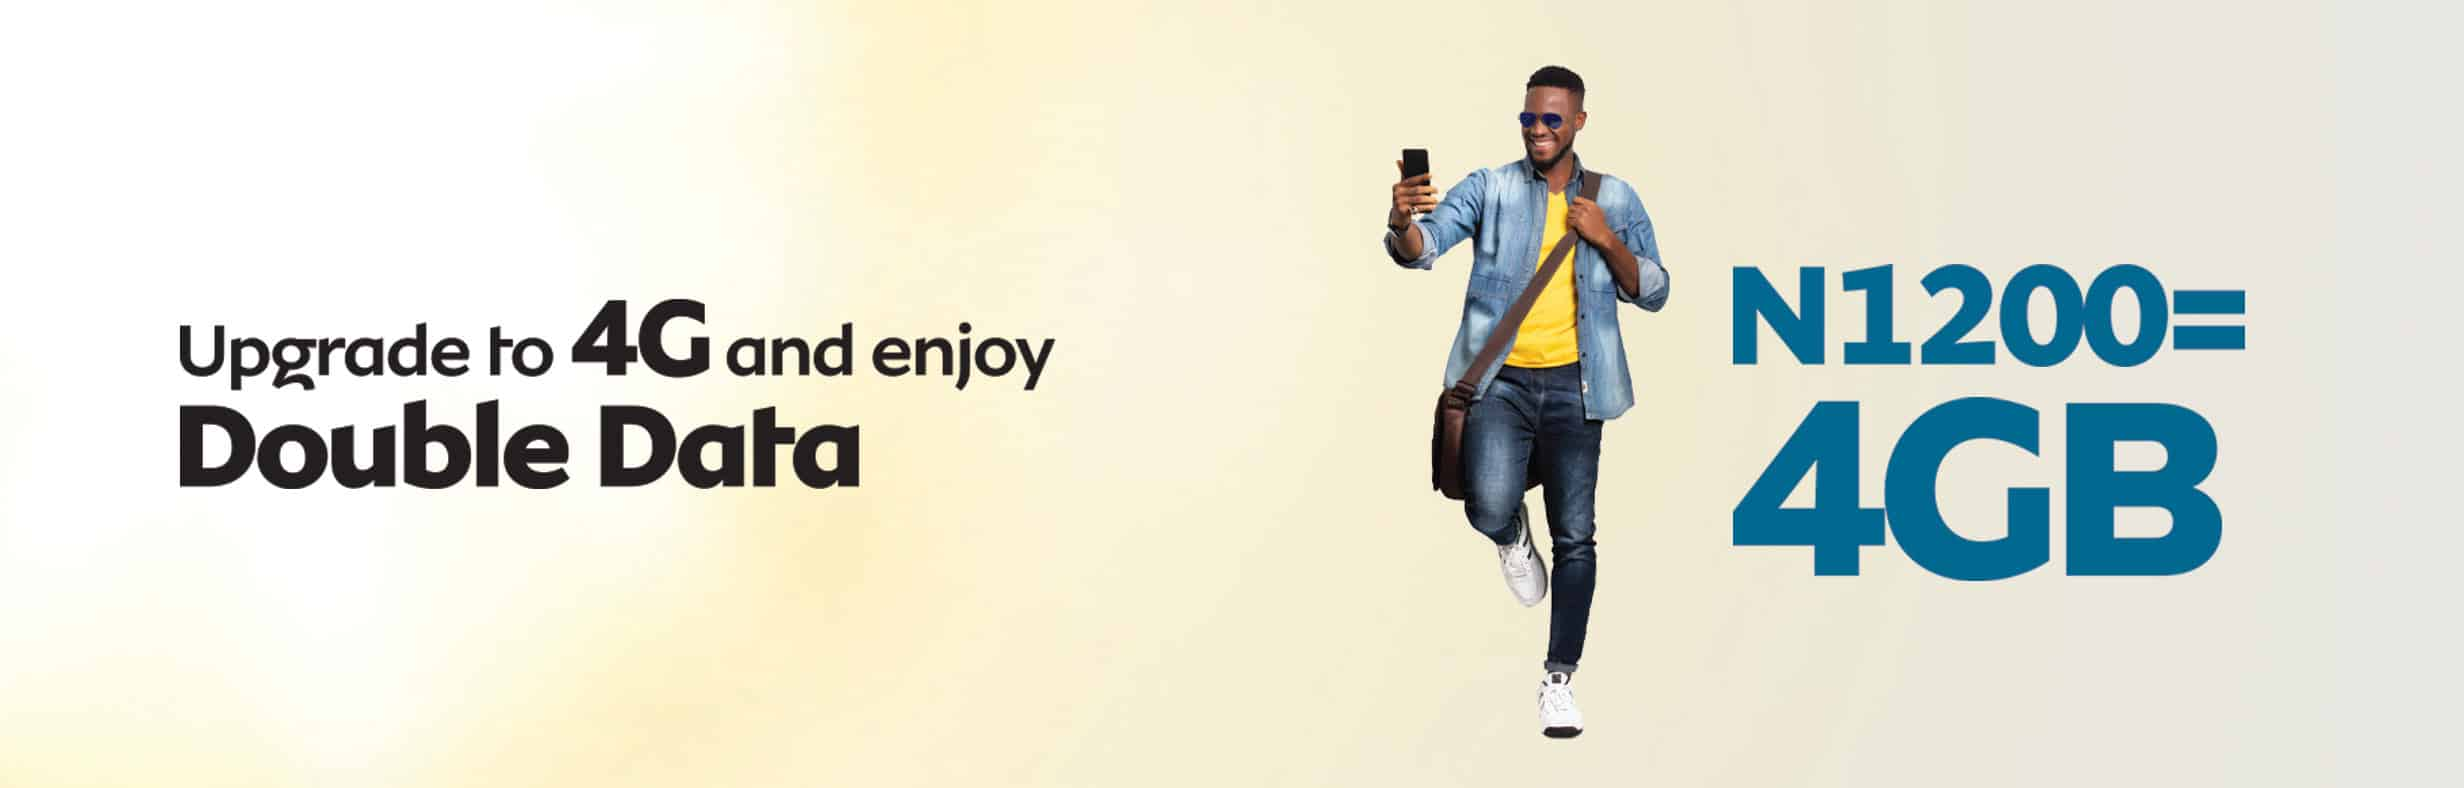 How to get 4GB for N1200 with MTN 4G Upgrade Offer